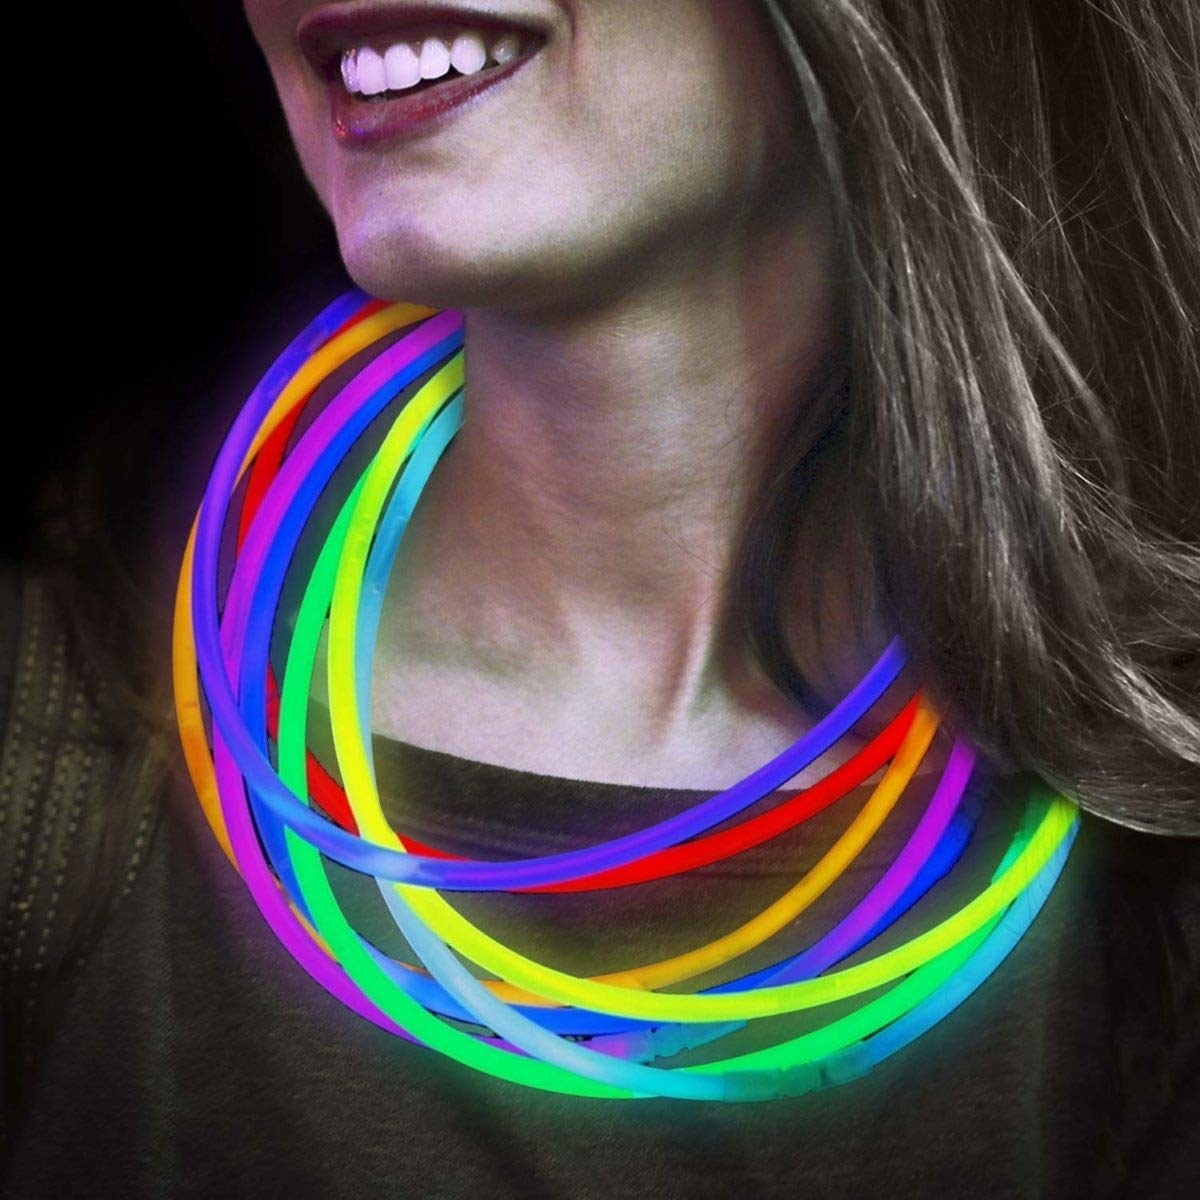 A person wearing lit up glow sticks as necklaces around her neck